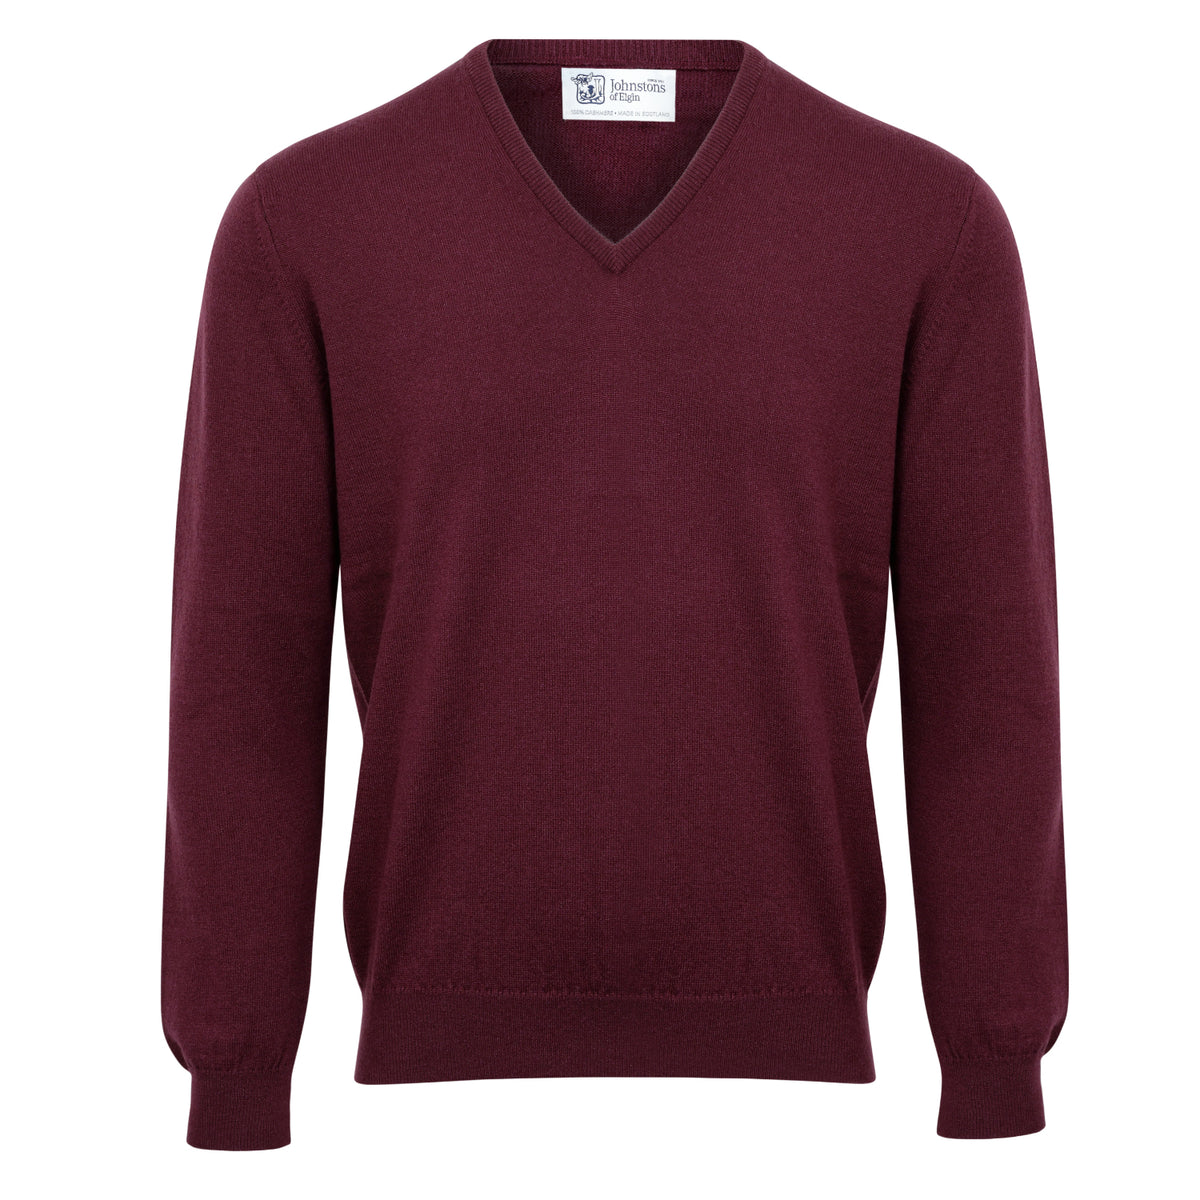 Johnstons of Elgin | Mens 2-Ply Cashmere V Neck | Aubergine Wine | Shop now at The Cashmere Choice | London